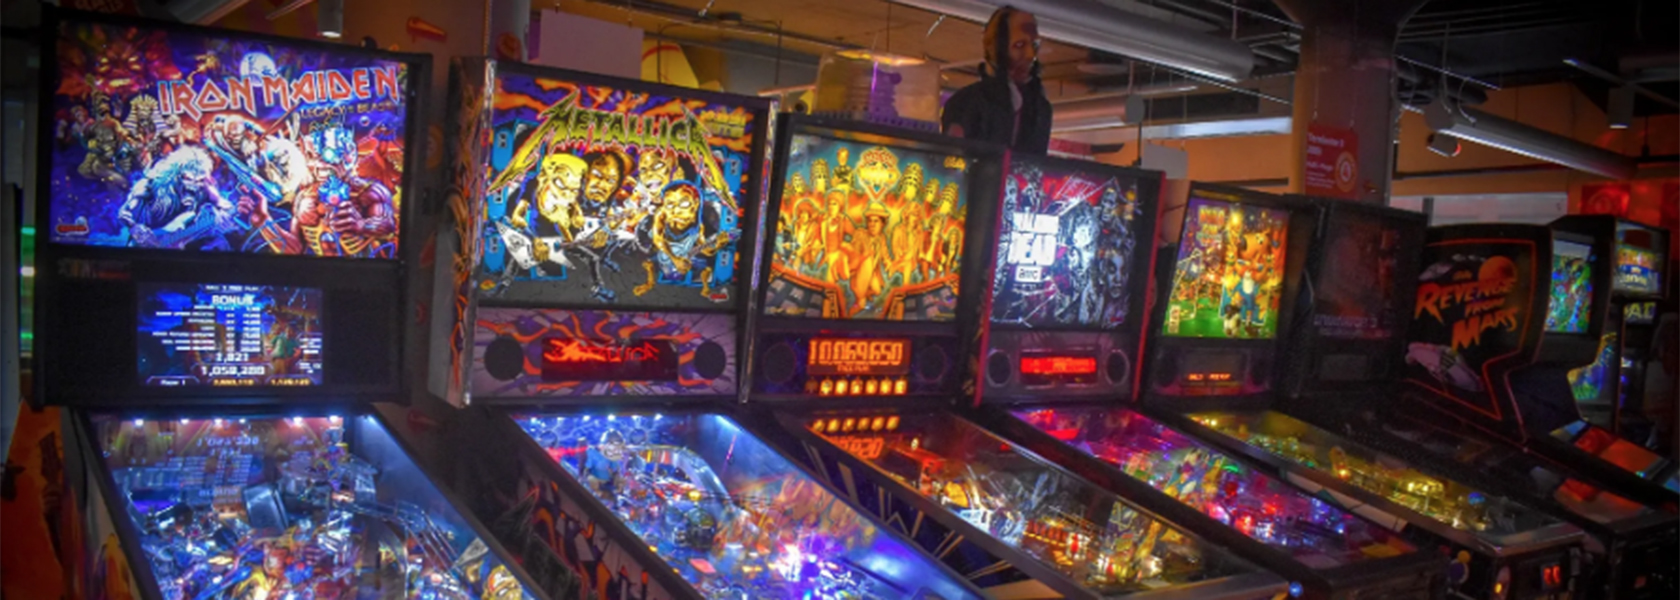 Roanoke_Pinball_Museum_Hero.jpg